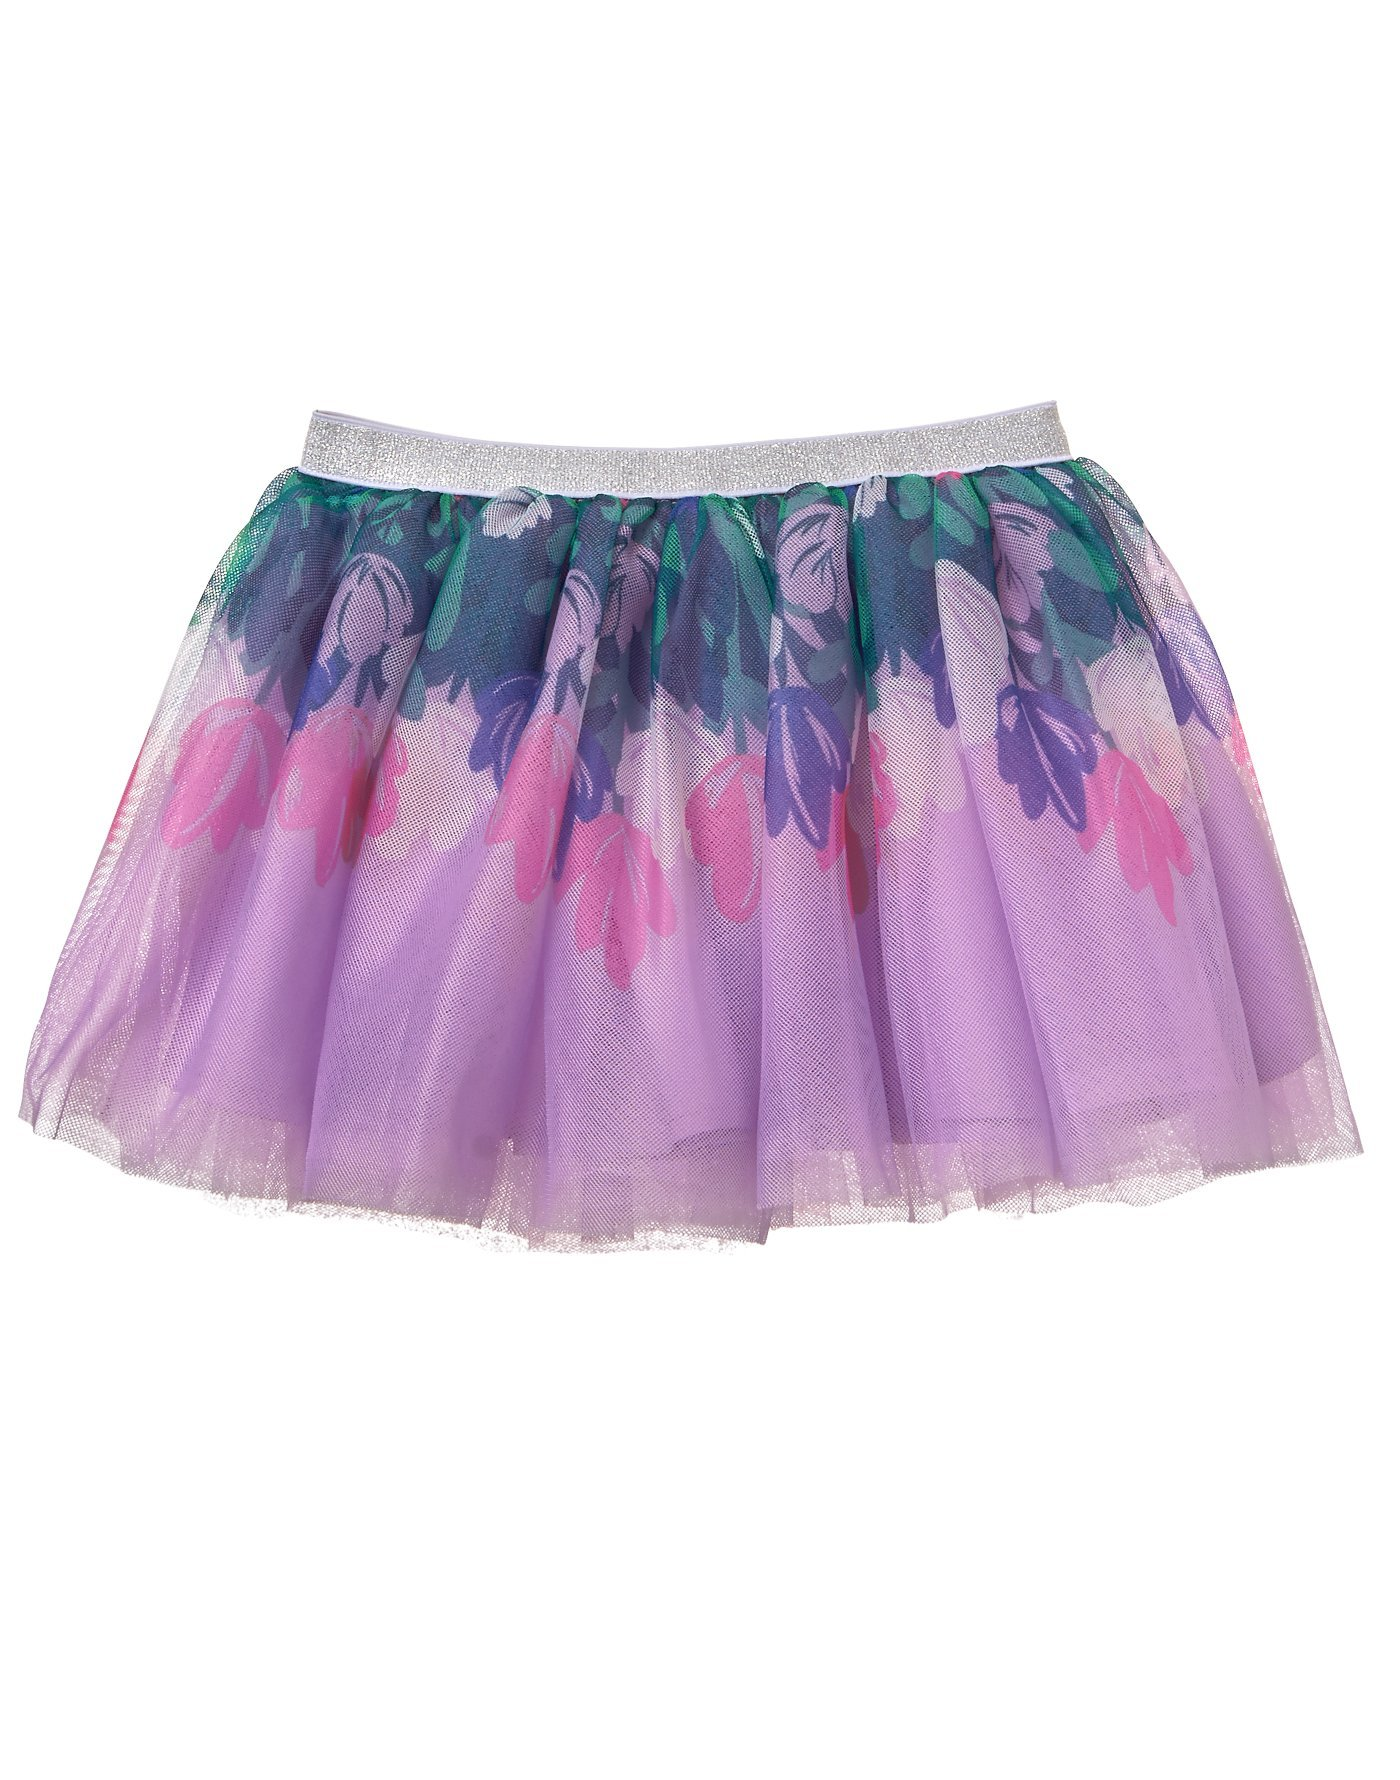 Gymboree Toddler Girls' Her Li'l Tutu Skirt, Floral, 4T